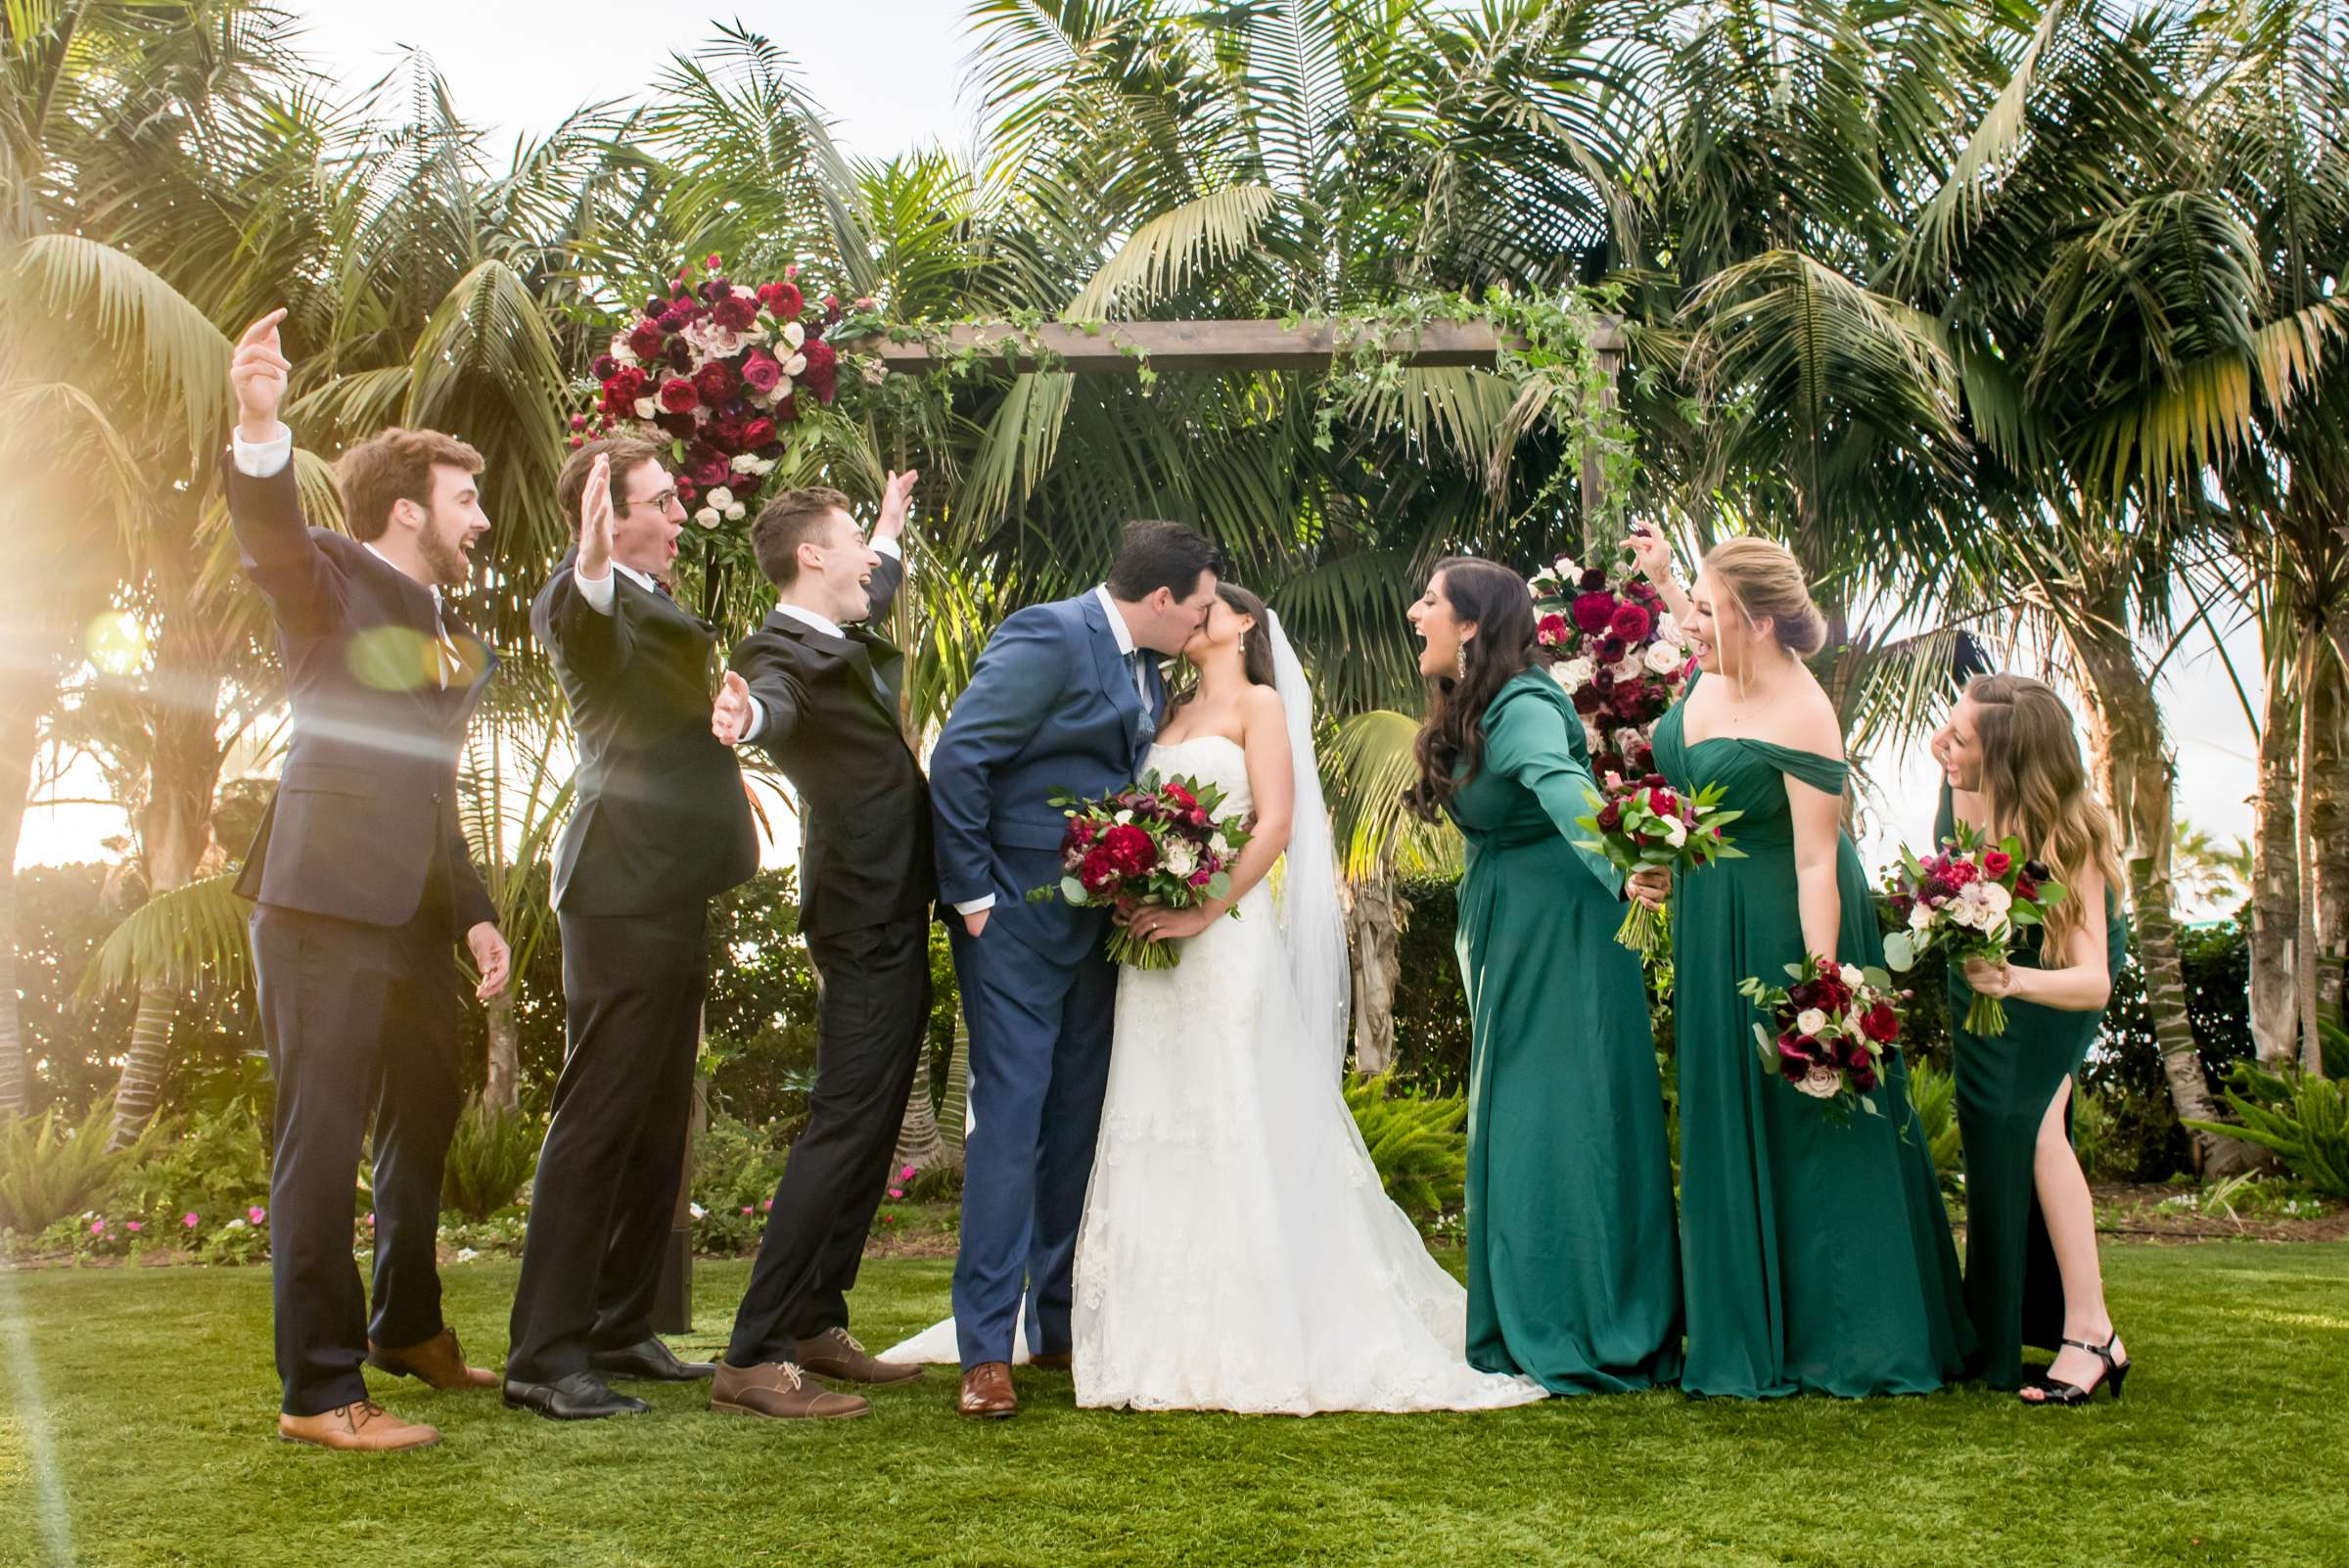 Cape Rey Carlsbad, A Hilton Resort Wedding, Jasmine and Kyle Wedding Photo #17 by True Photography